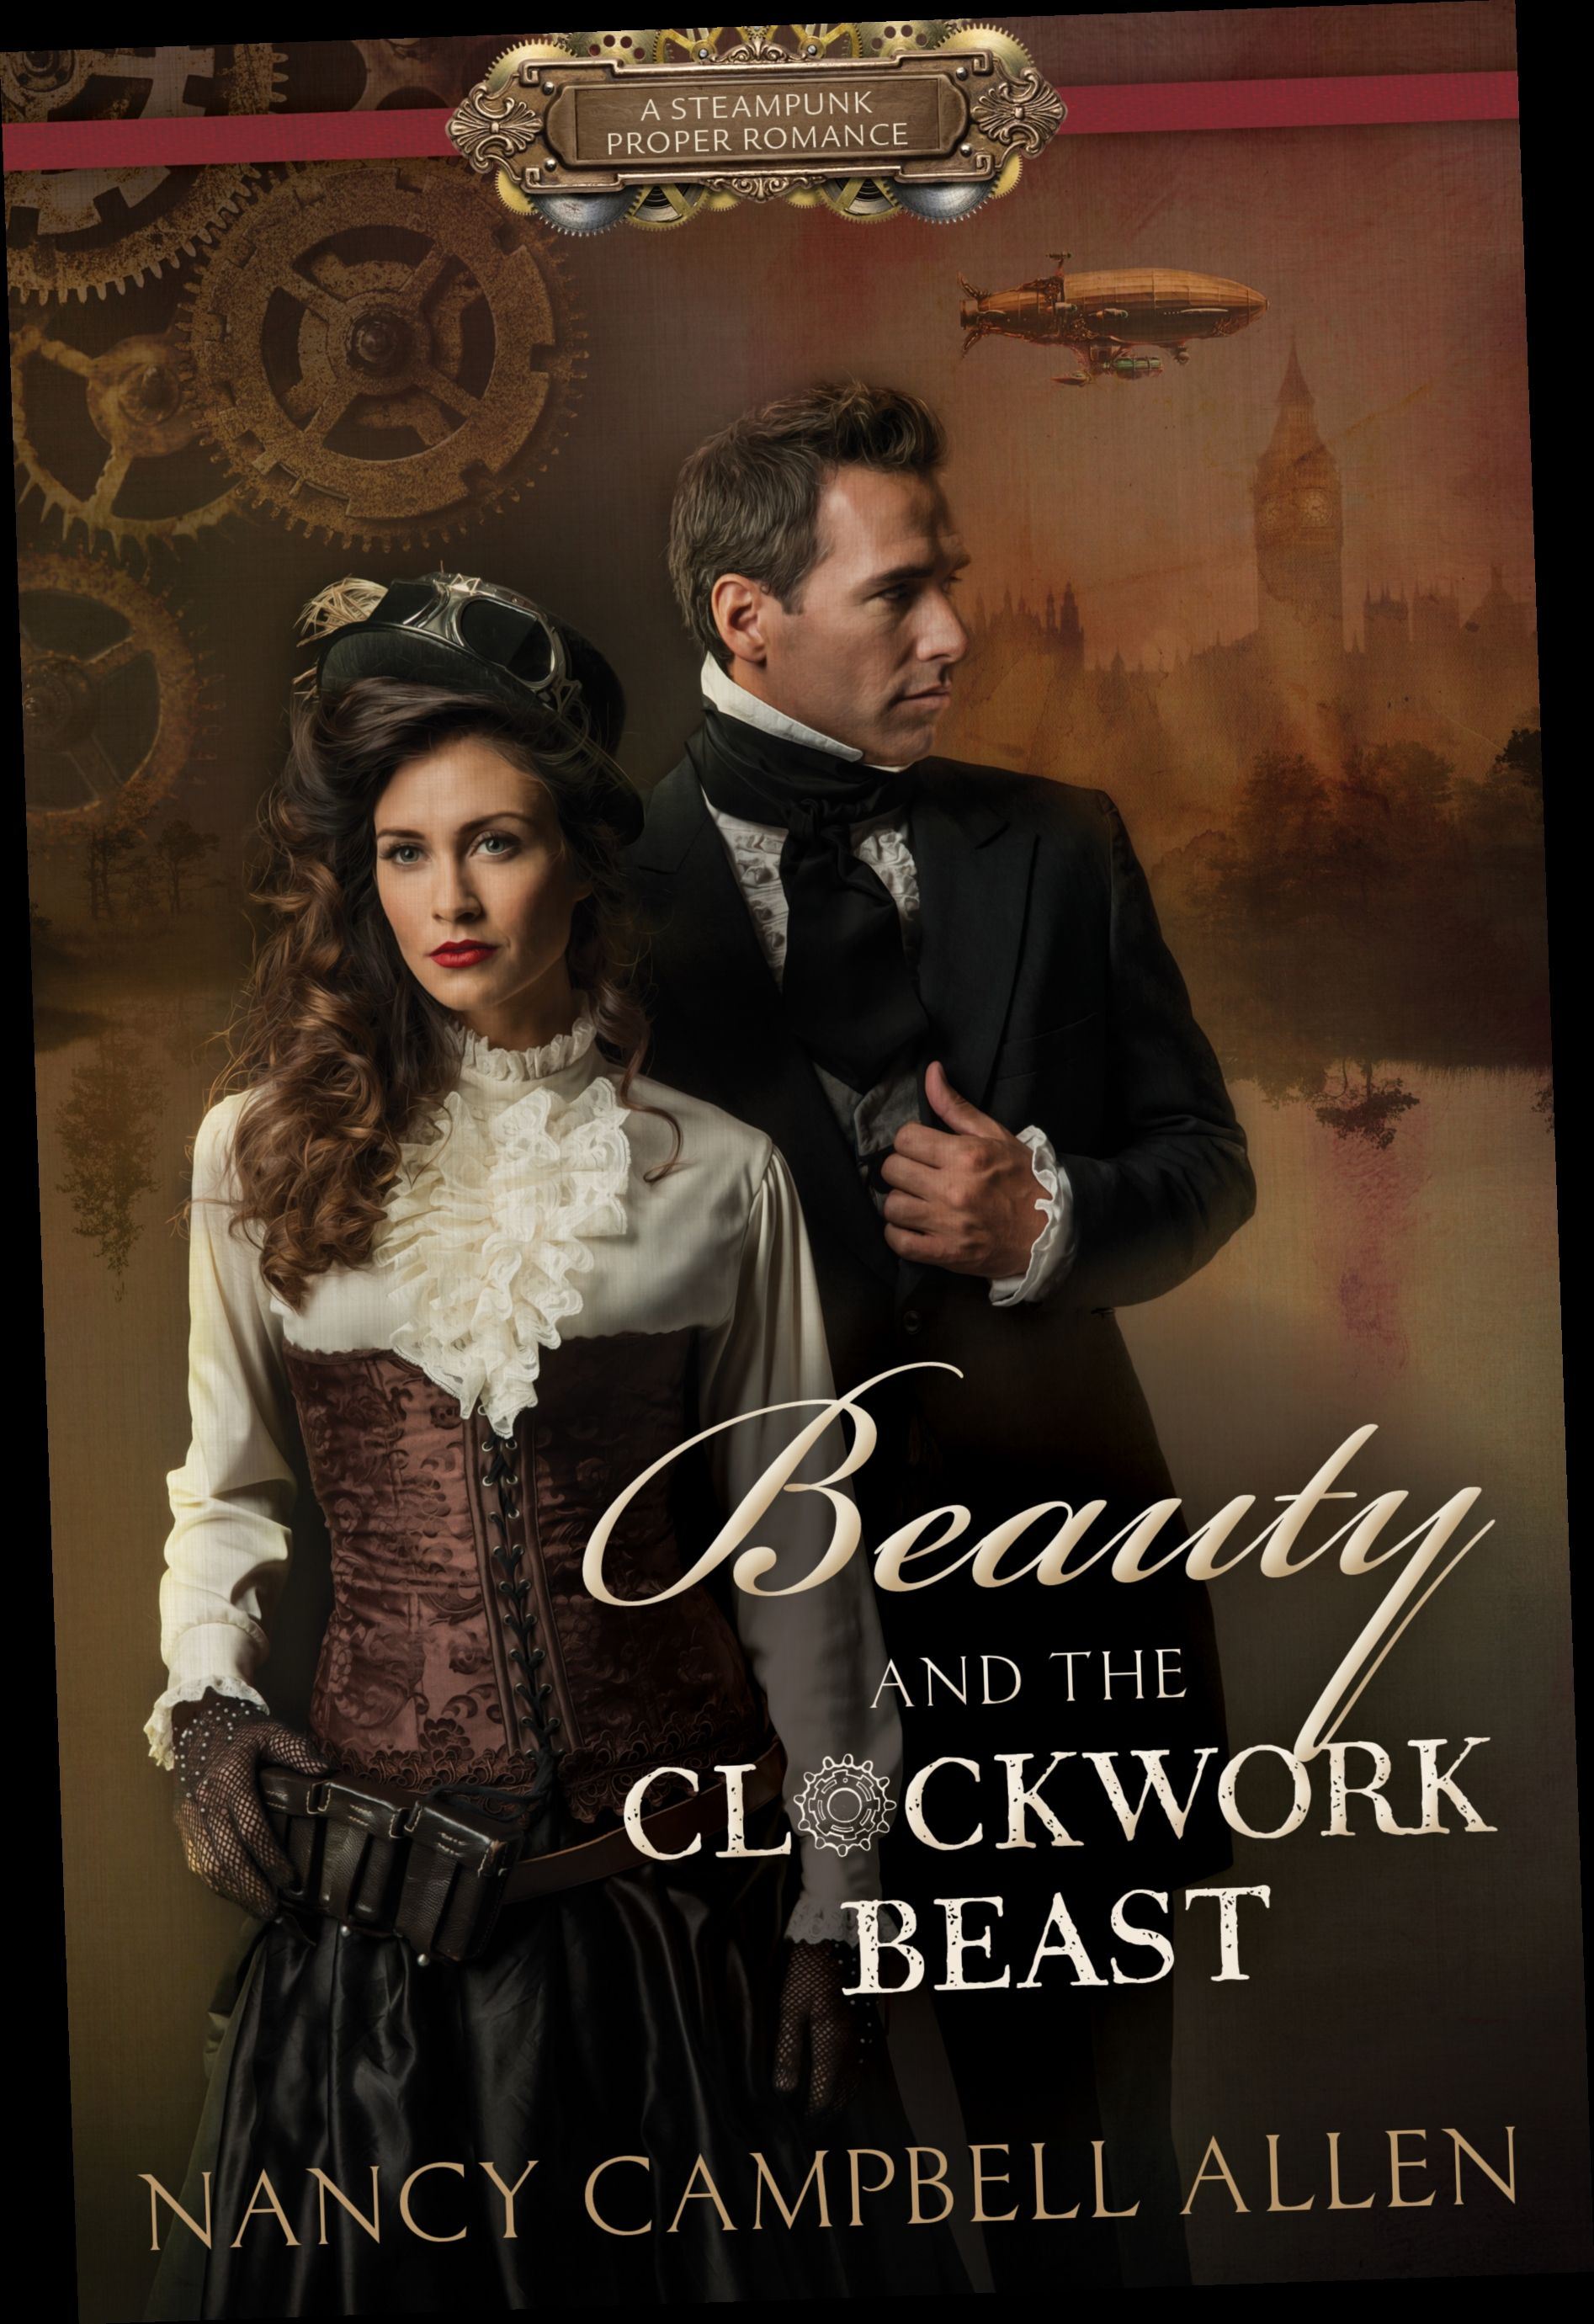 Ebook Pdf Epub Download Beauty And The Clockwork Beast By Nancy Campbell Allen